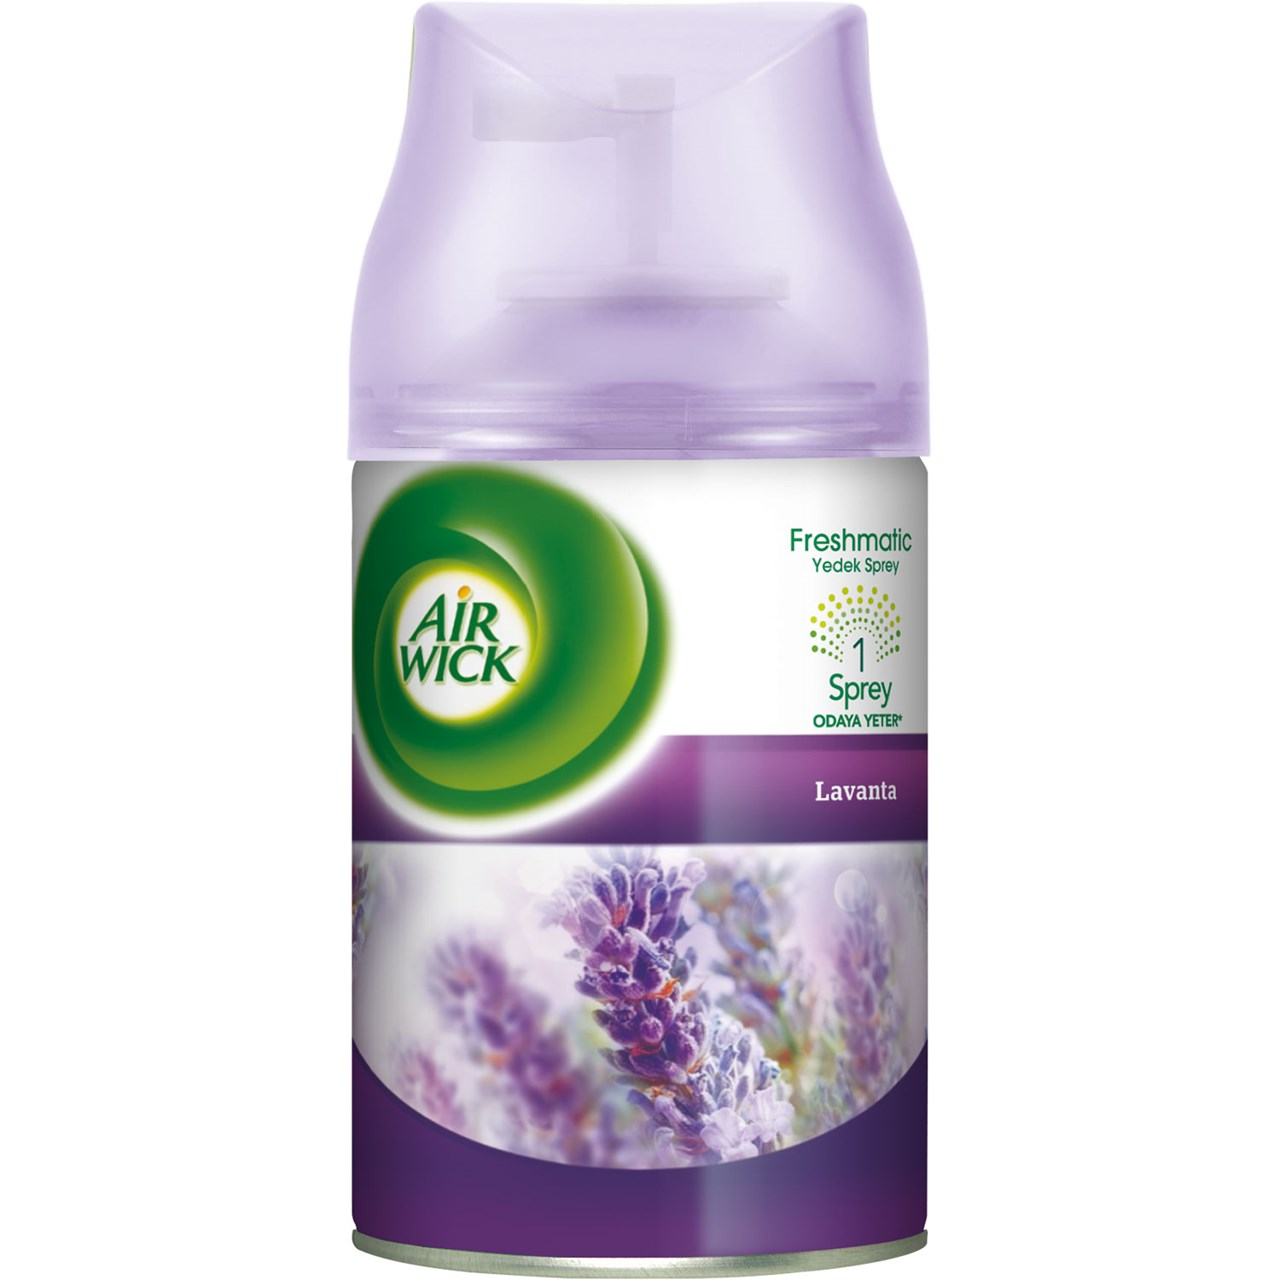 AIR WICK FRESHMATIC YEDEK – LAVANTA